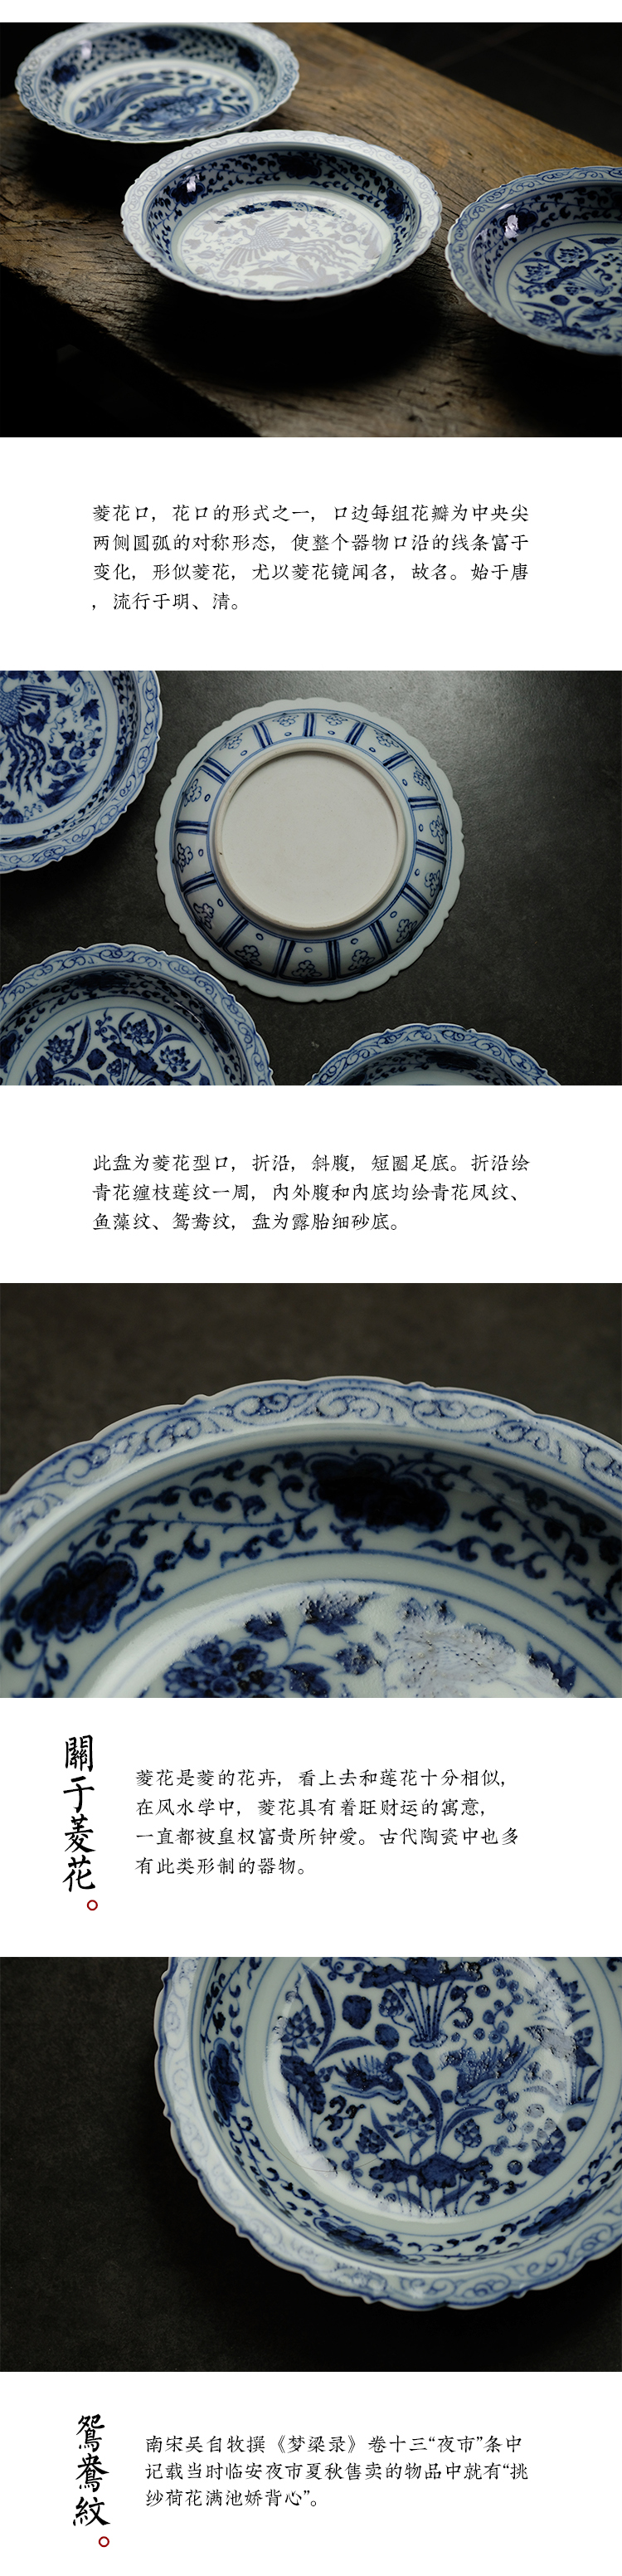 Long up controller blue - and - white yuan ling expressions using bound branch lines to admire the dish offered home - cooked in jingdezhen ceramic plate plate by hand